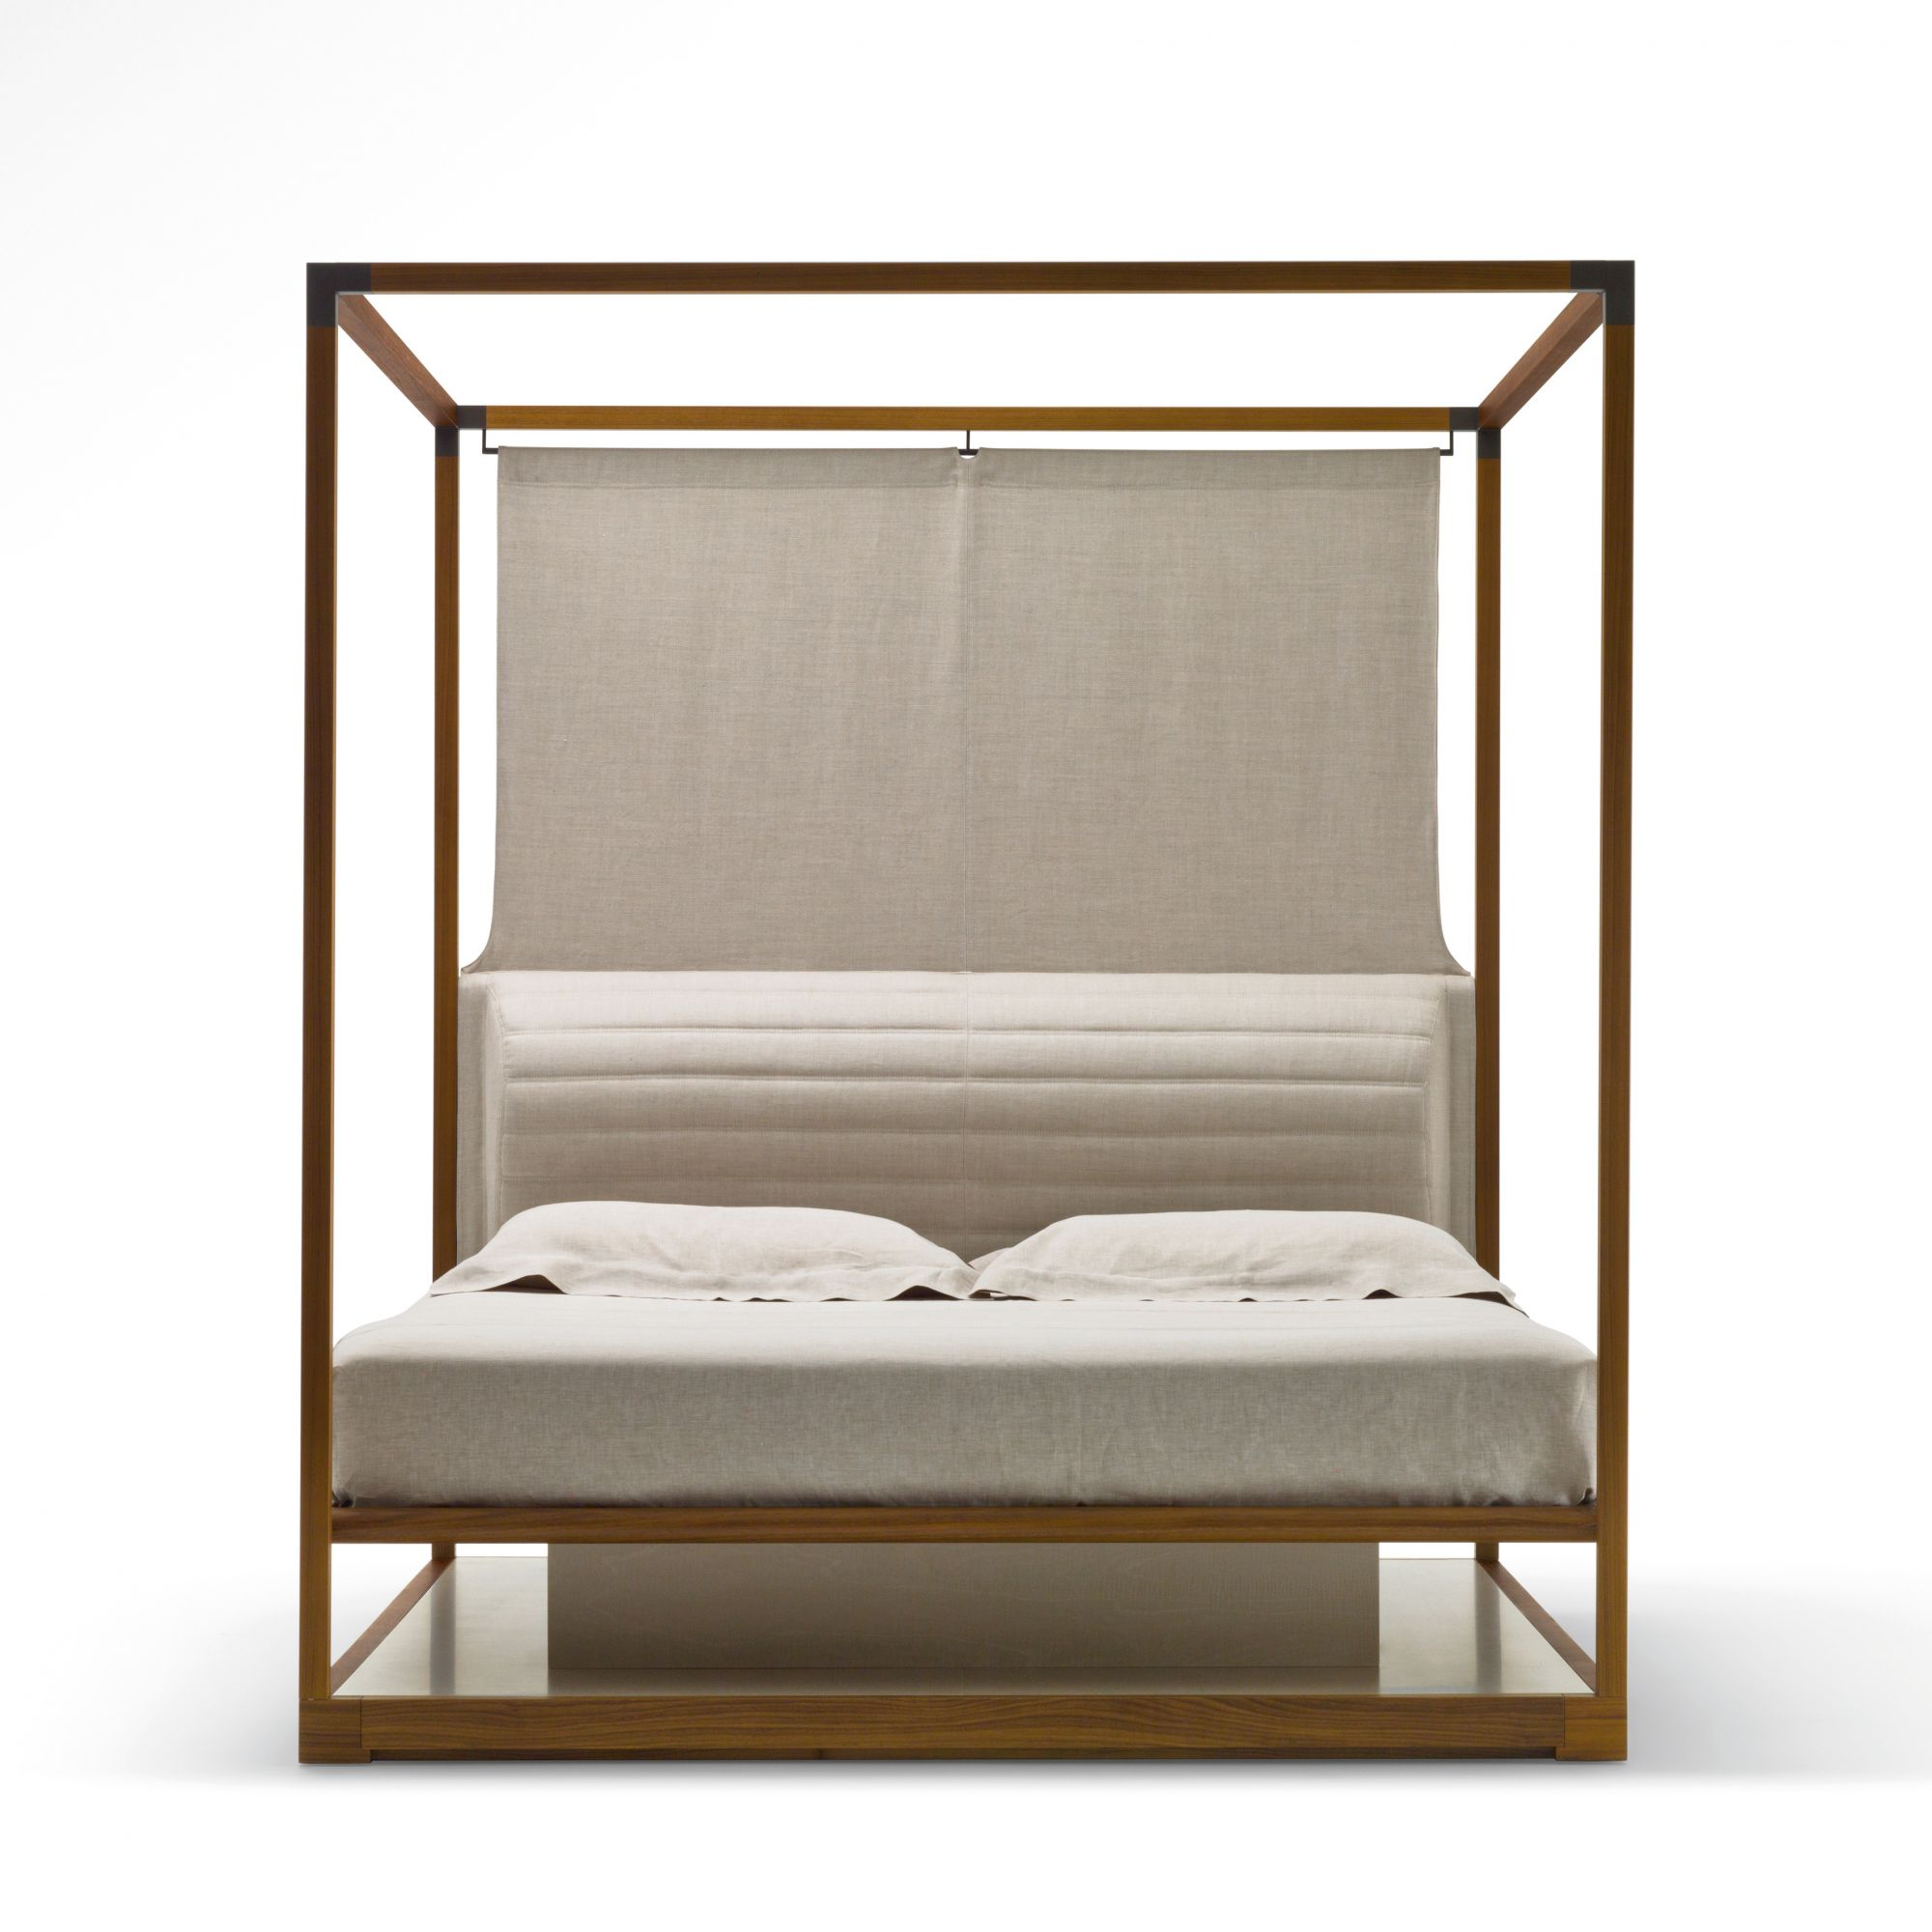 four-poster bed by Chi Wing Lo from Space Furniture